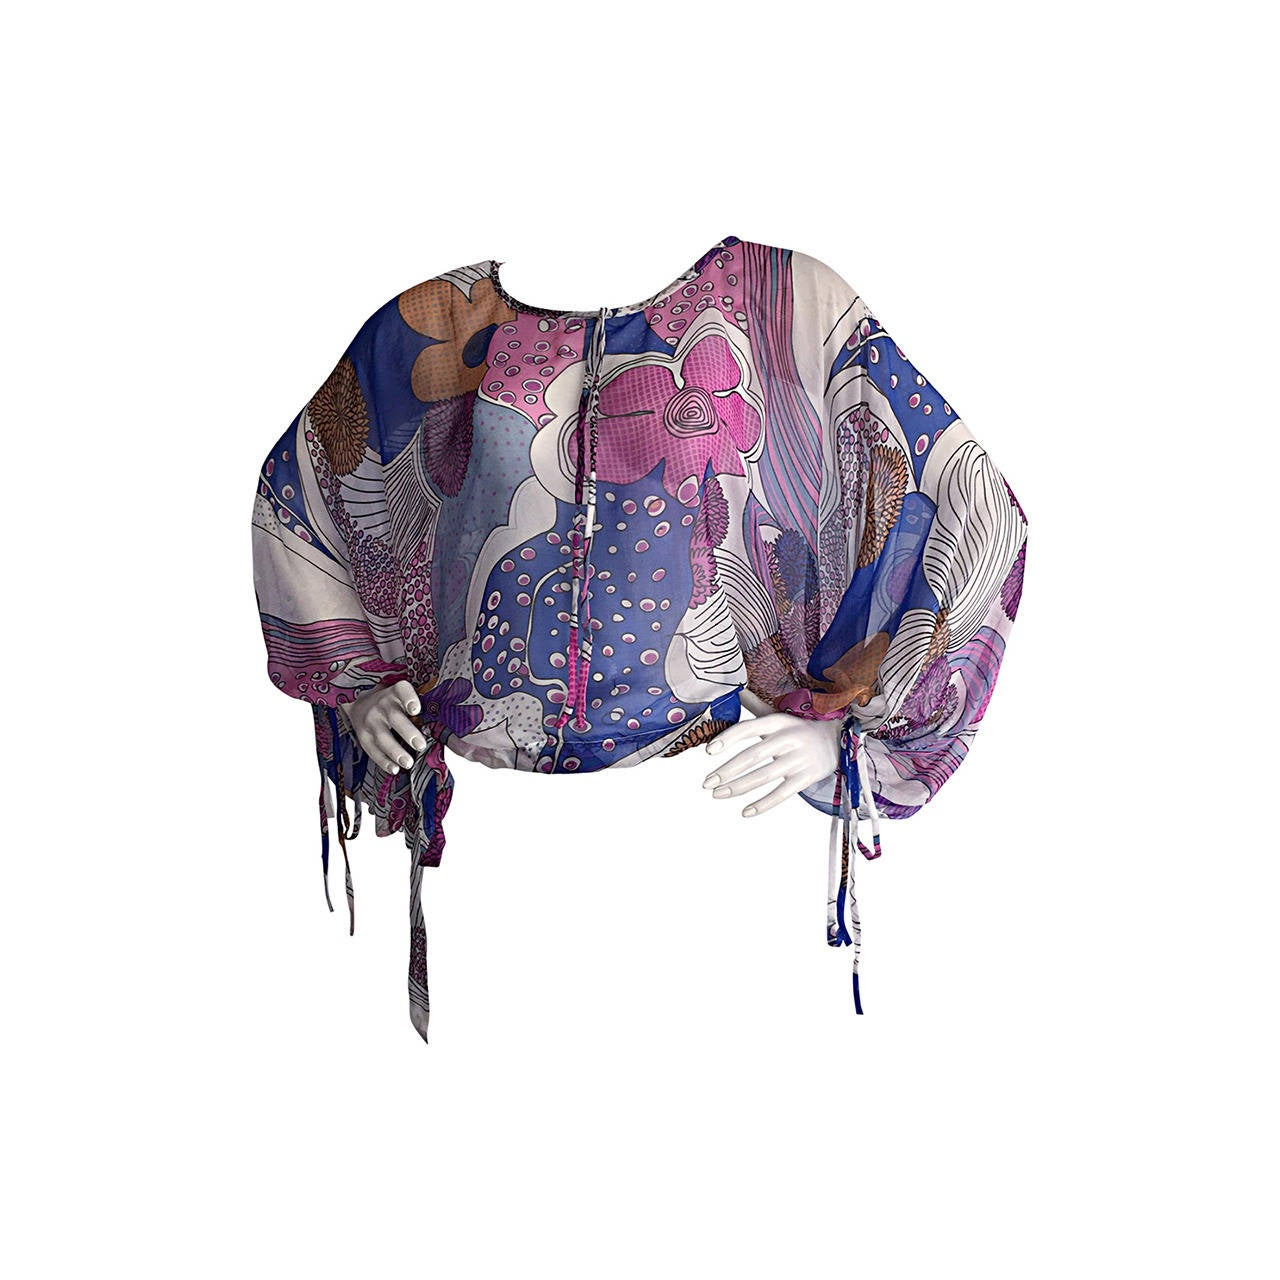 Amazing Vintage Kenzo Colorful ' Flower Power ' Drawstring Boho Top / Blouse For Sale